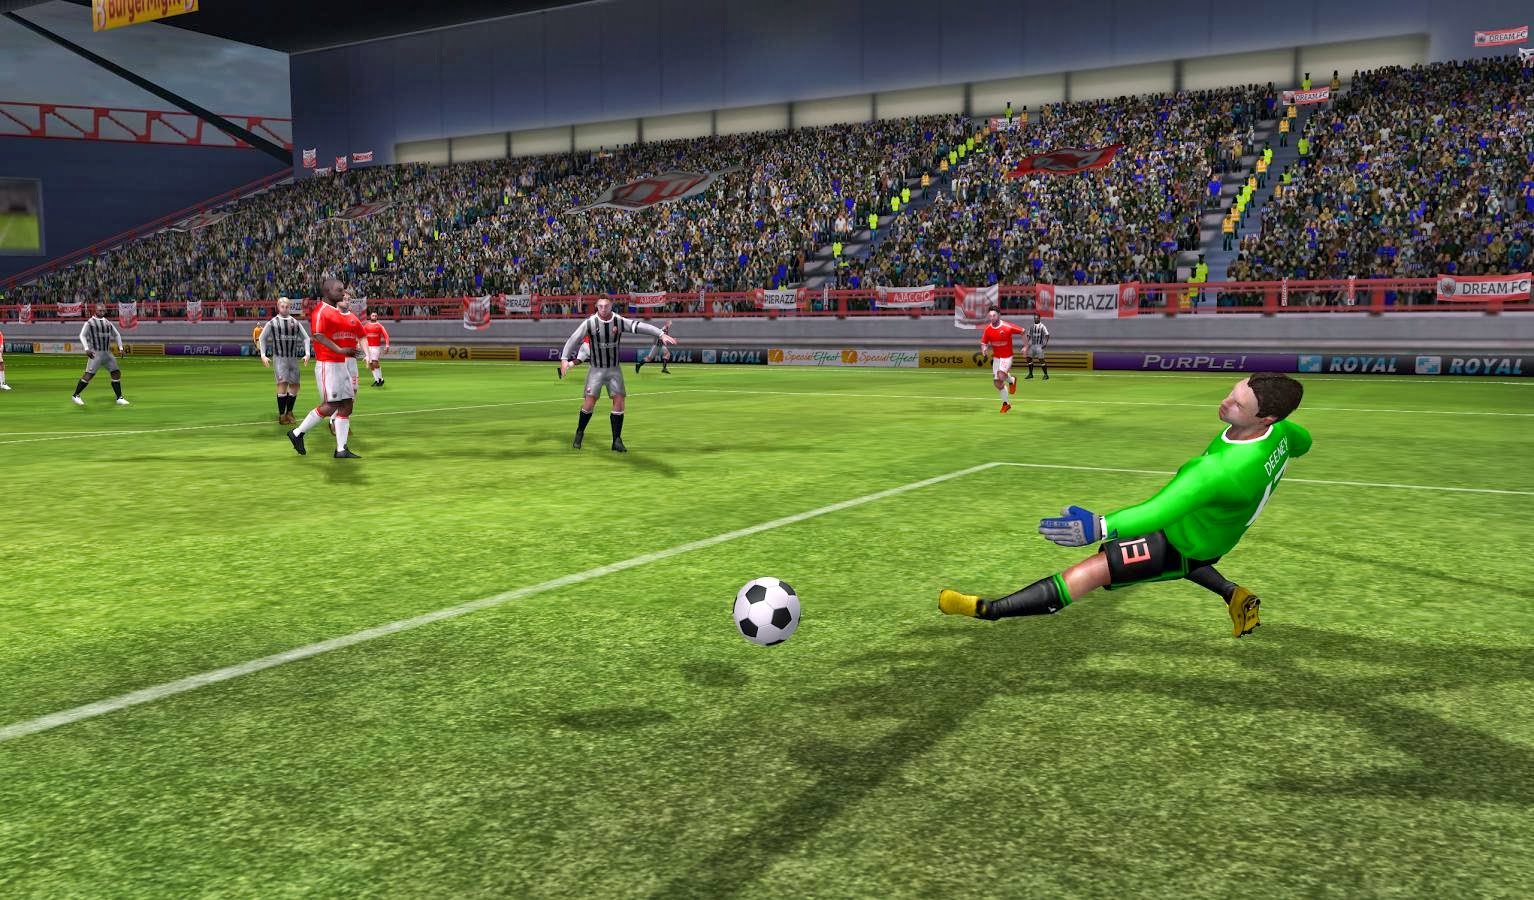 Free Download Dream League Soccer 1.55 MOD APK+DATA Full Android Game